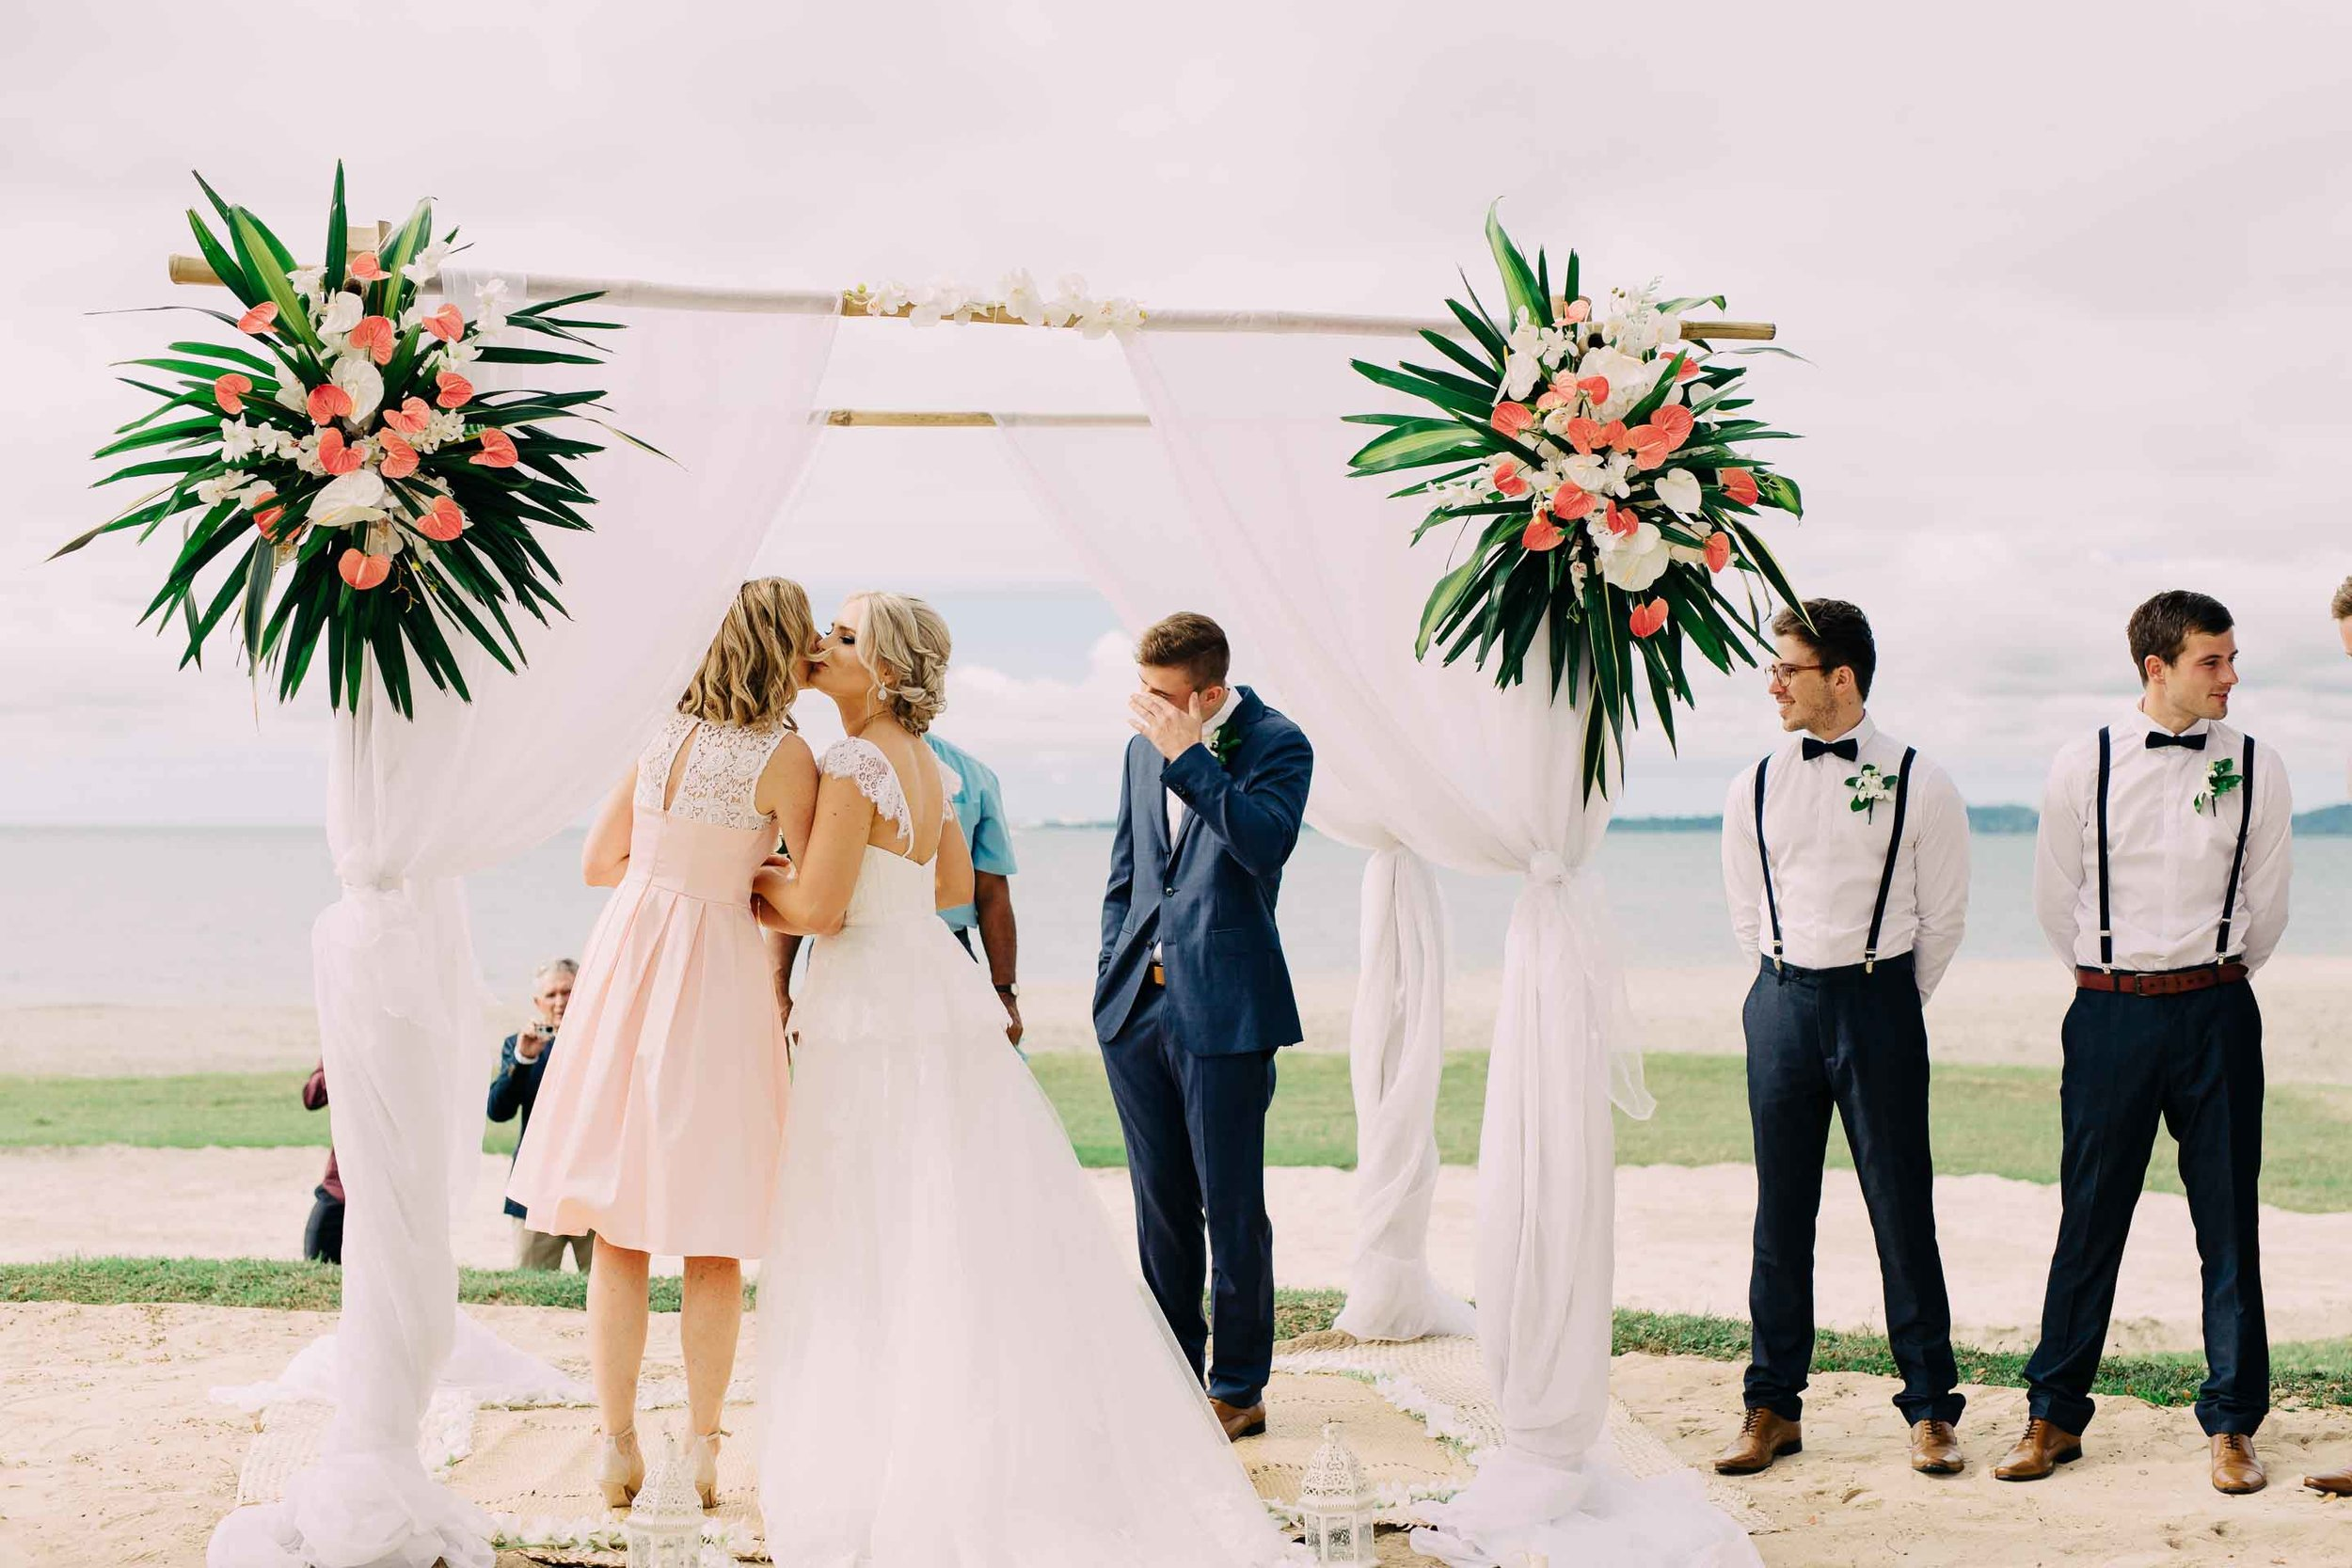 The groom cries as he sees his stunning bride for the first time. The bride kisses her mother before joining her husband to be under the ceremony arch.